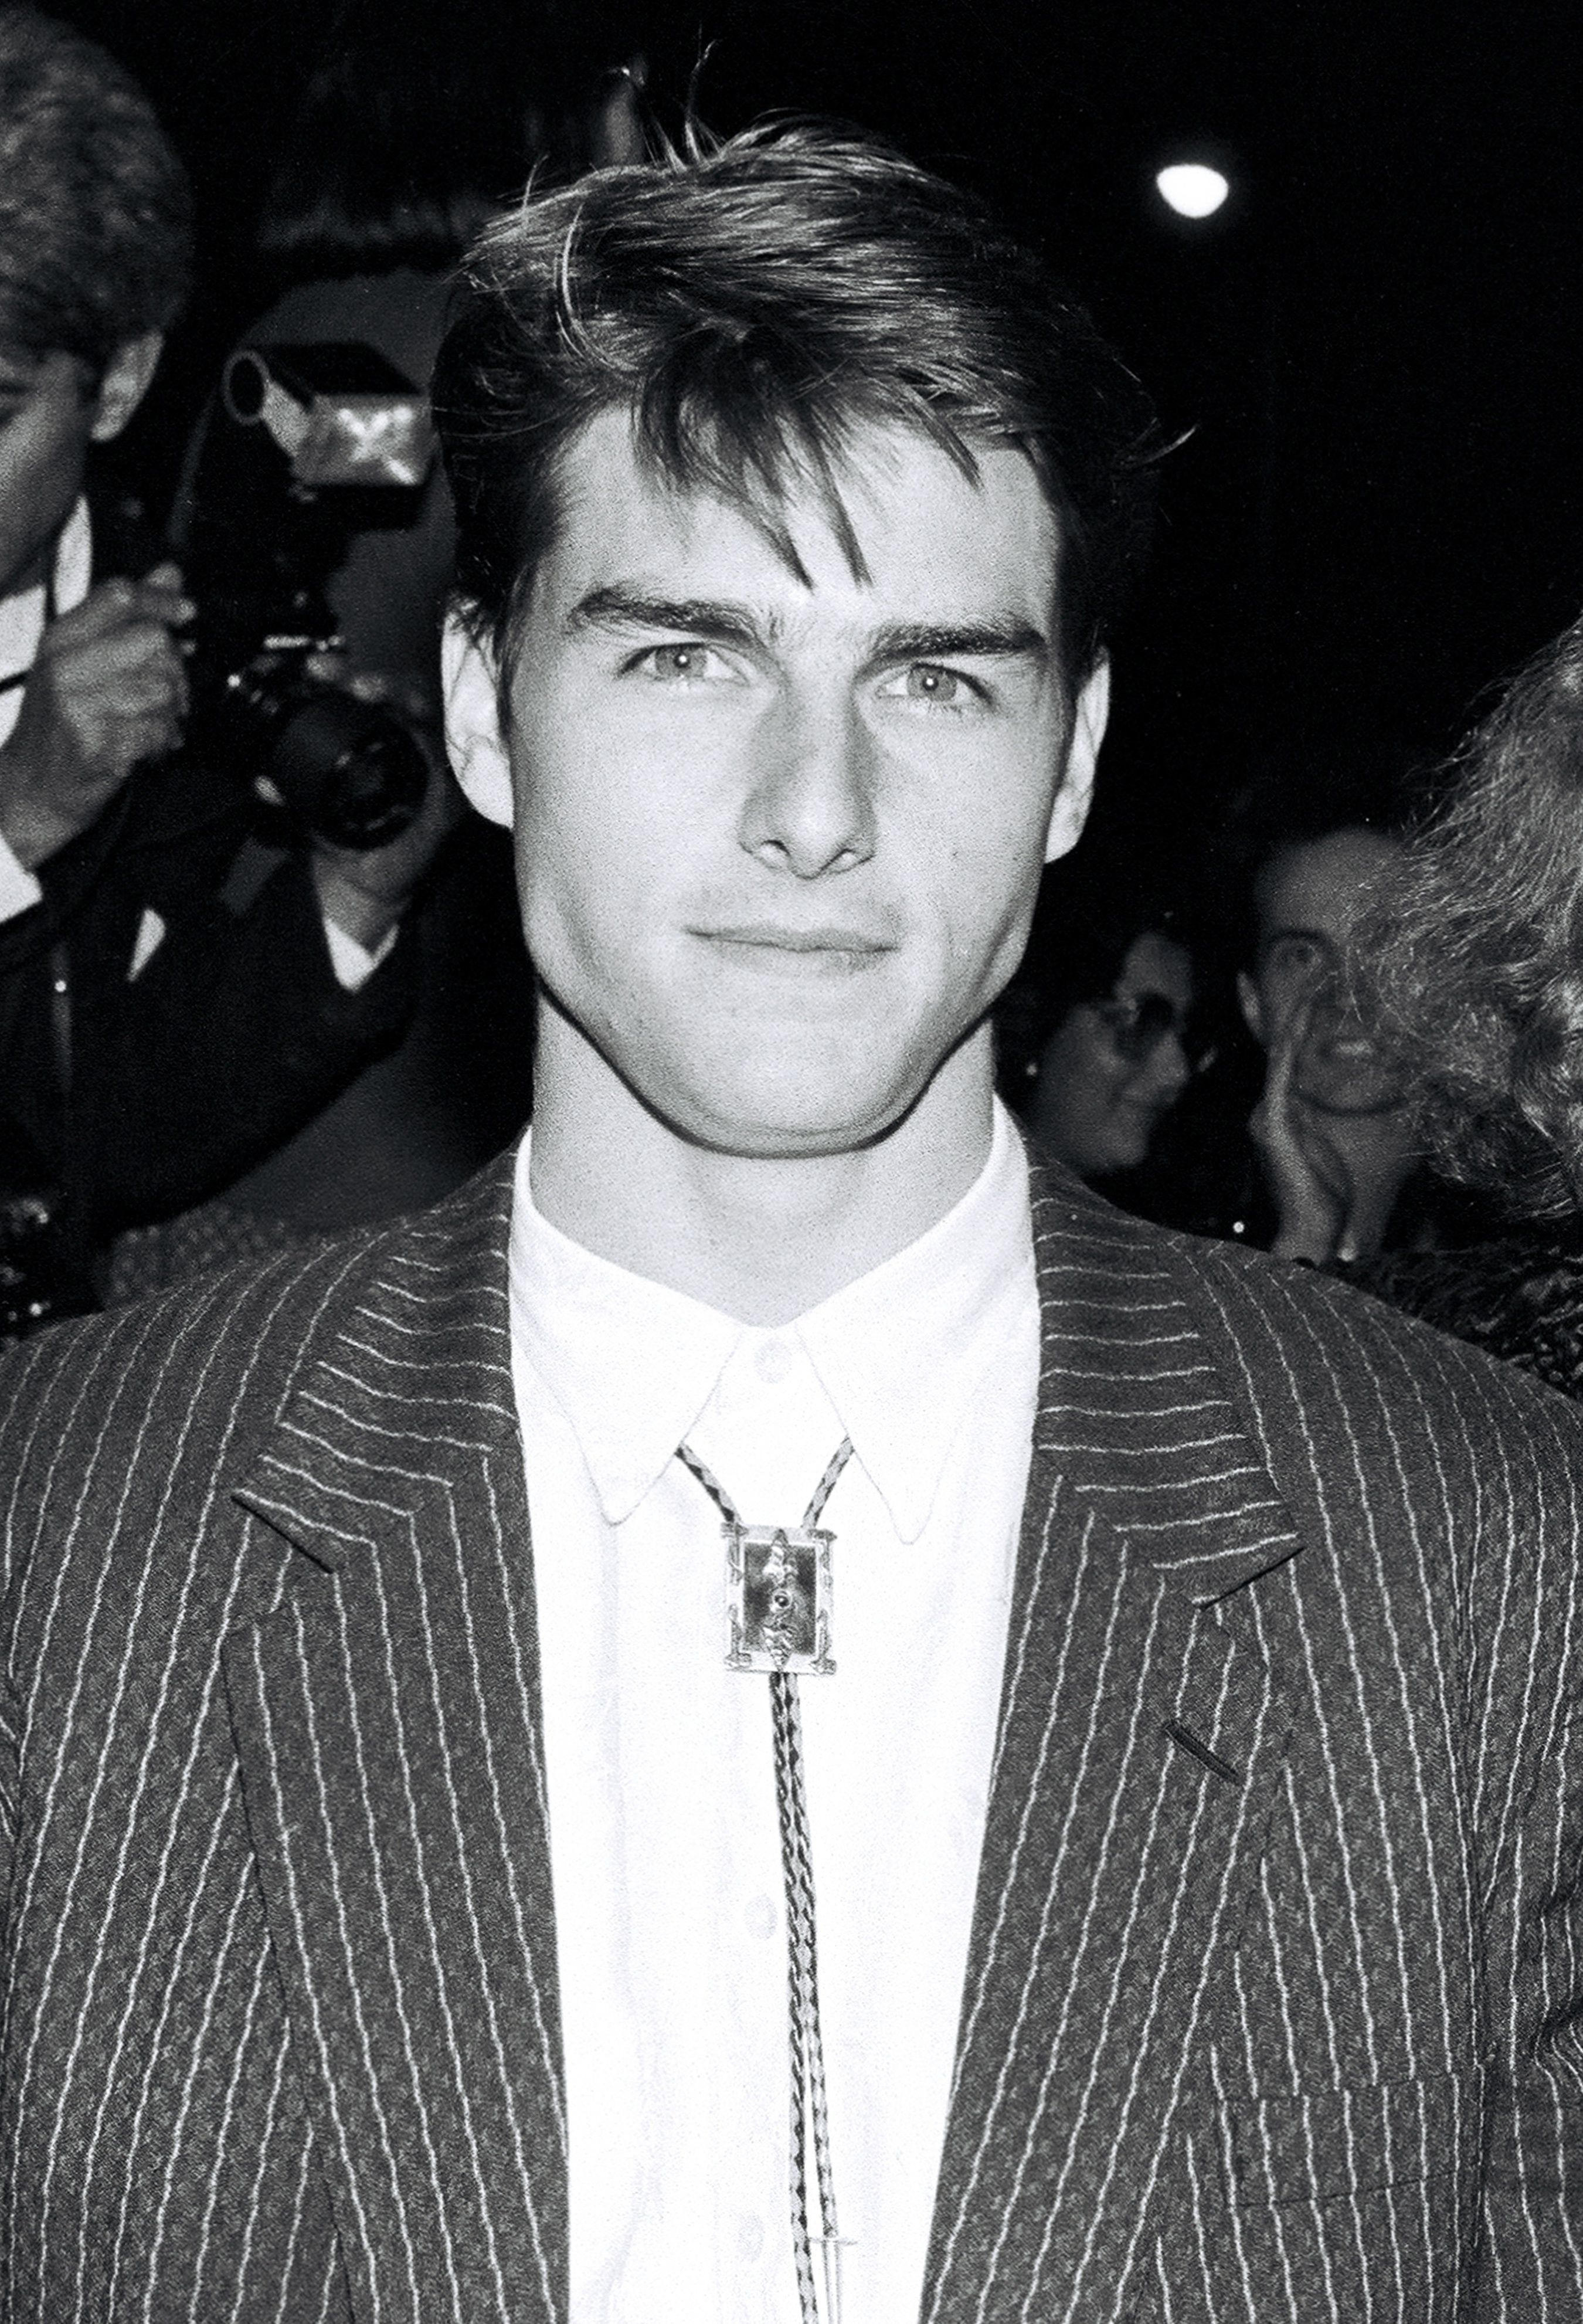 Tom Cruise ageless face